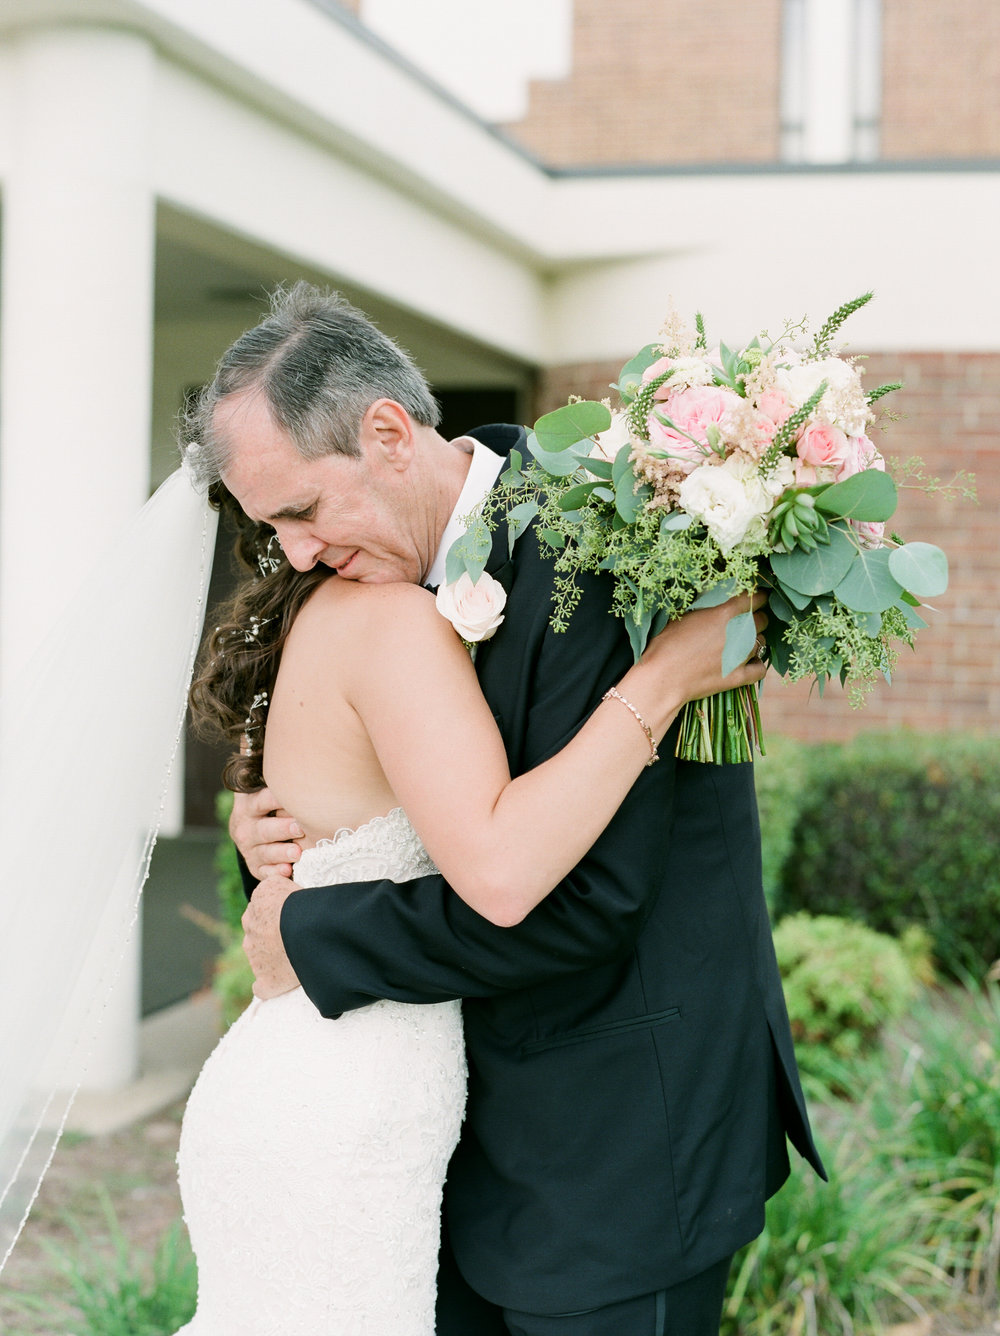 pensacola-fl-wedding-film-photographers-kayliebpoplin